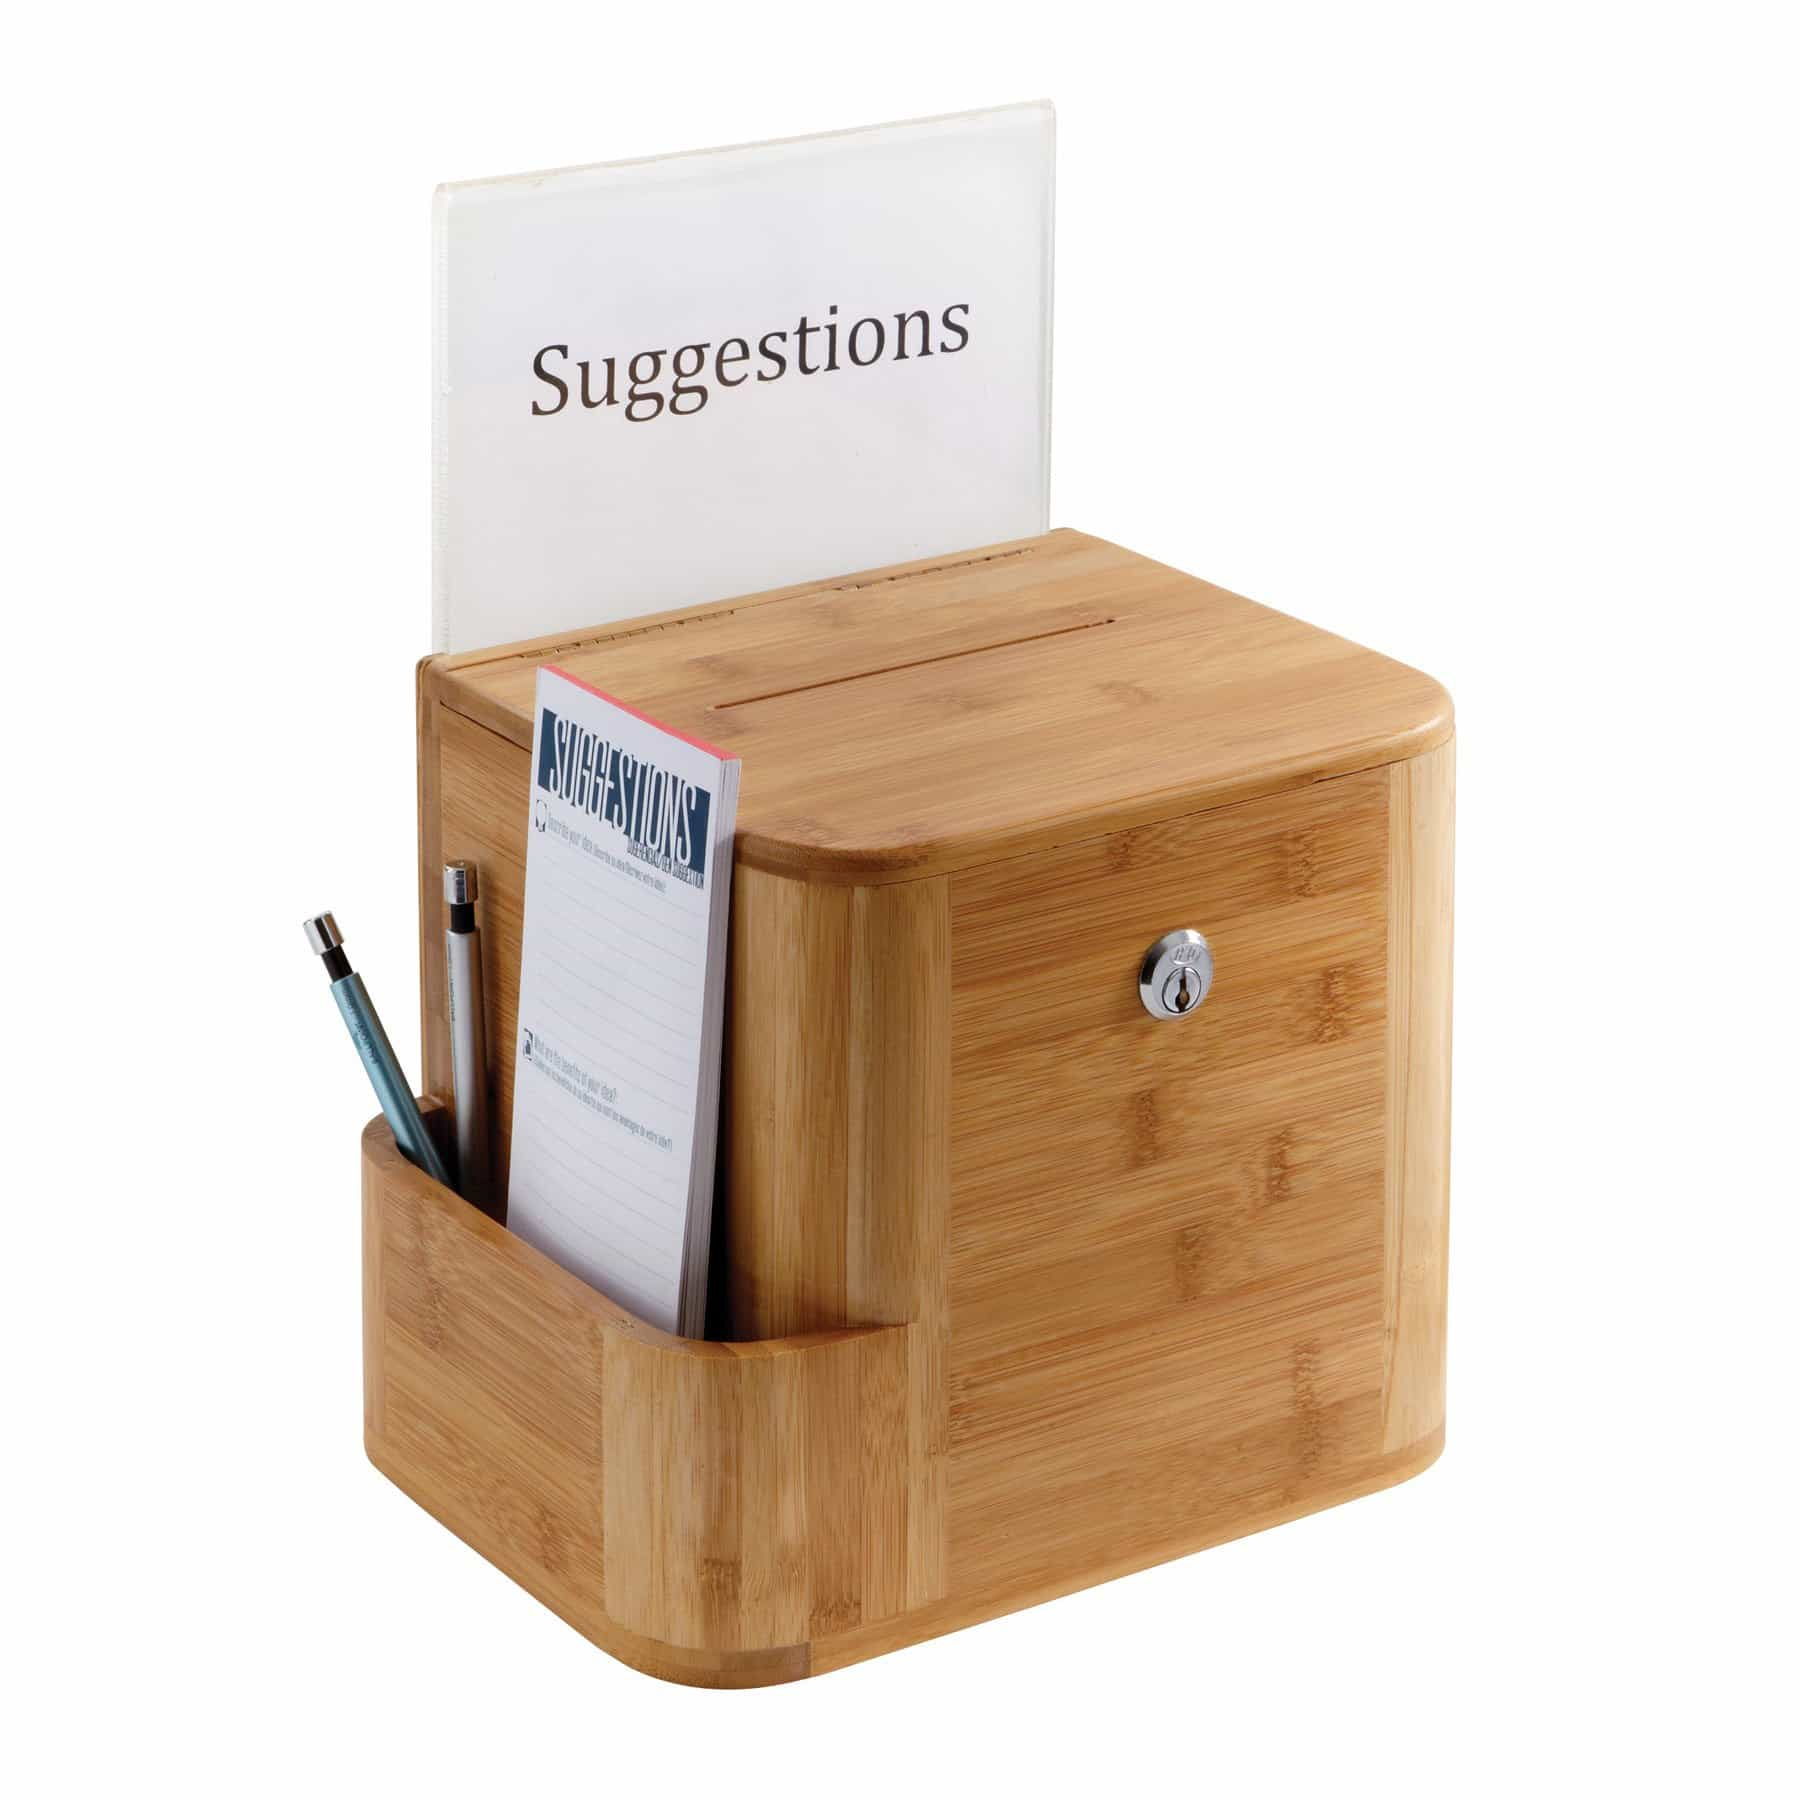 bedinhome - Safco Clear acrylic display Bamboo Suggestion deposit Box Included Two keys - Safco - Suggestion Box